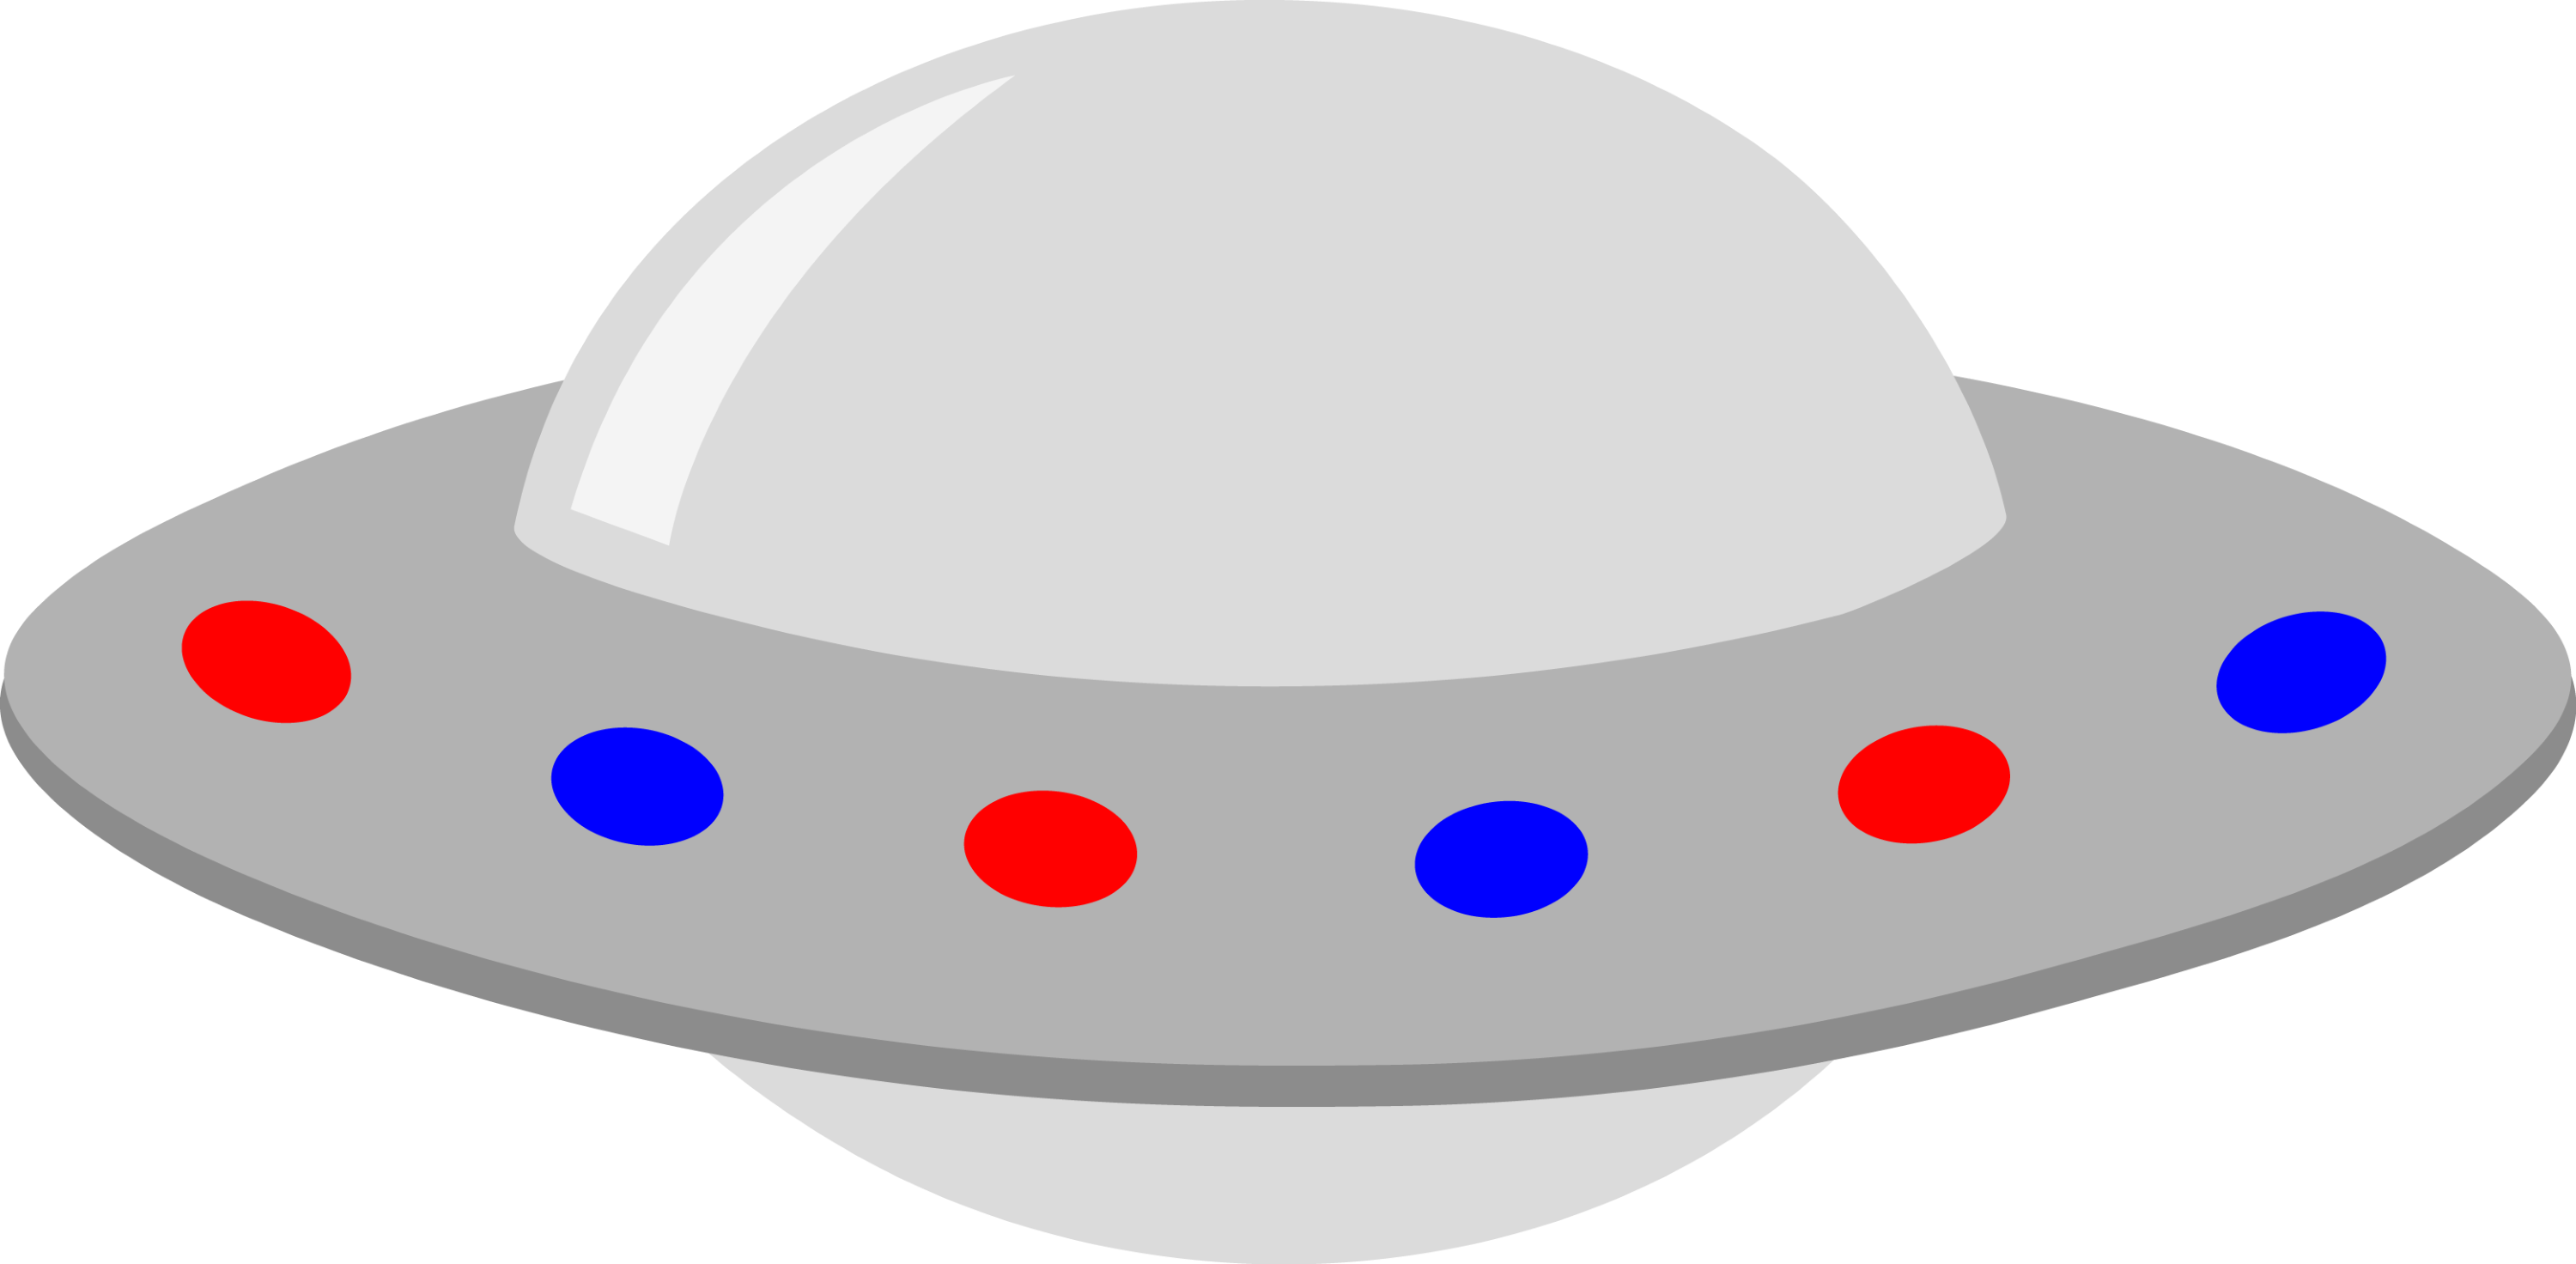 Alien Ufo Clip Art Silver ufo with red and blue lights - free clip art